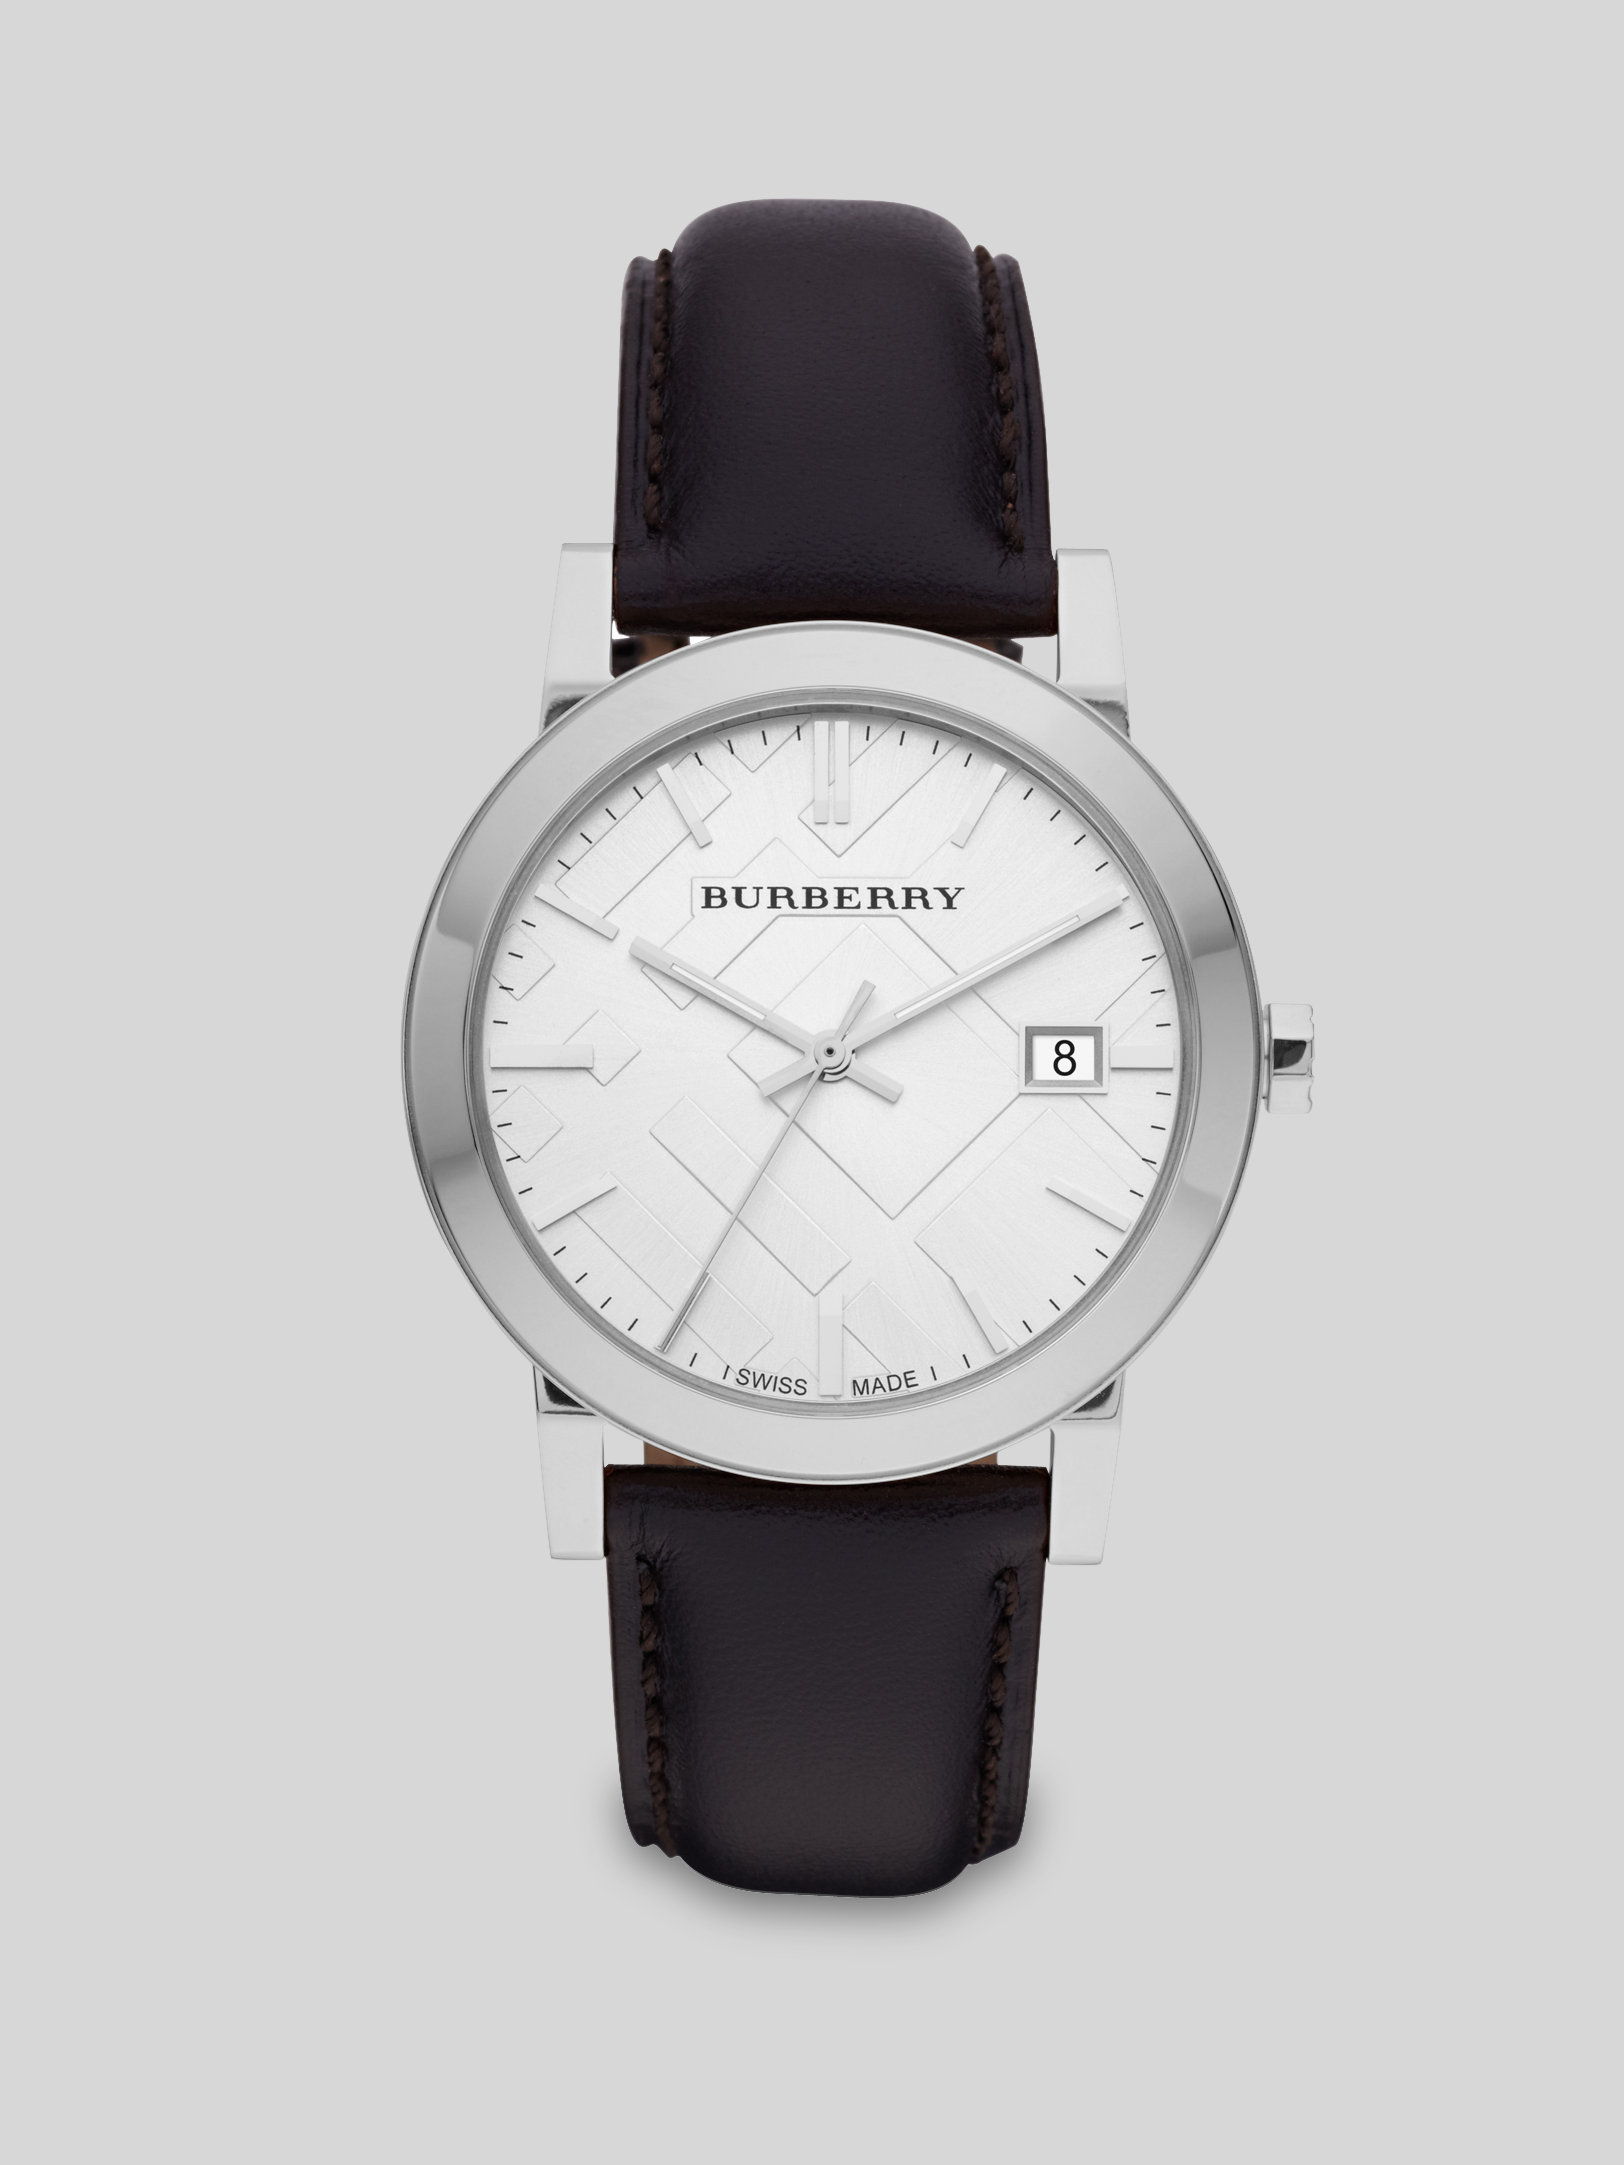 burberry sale outlet online a1ey  burberry watch leather